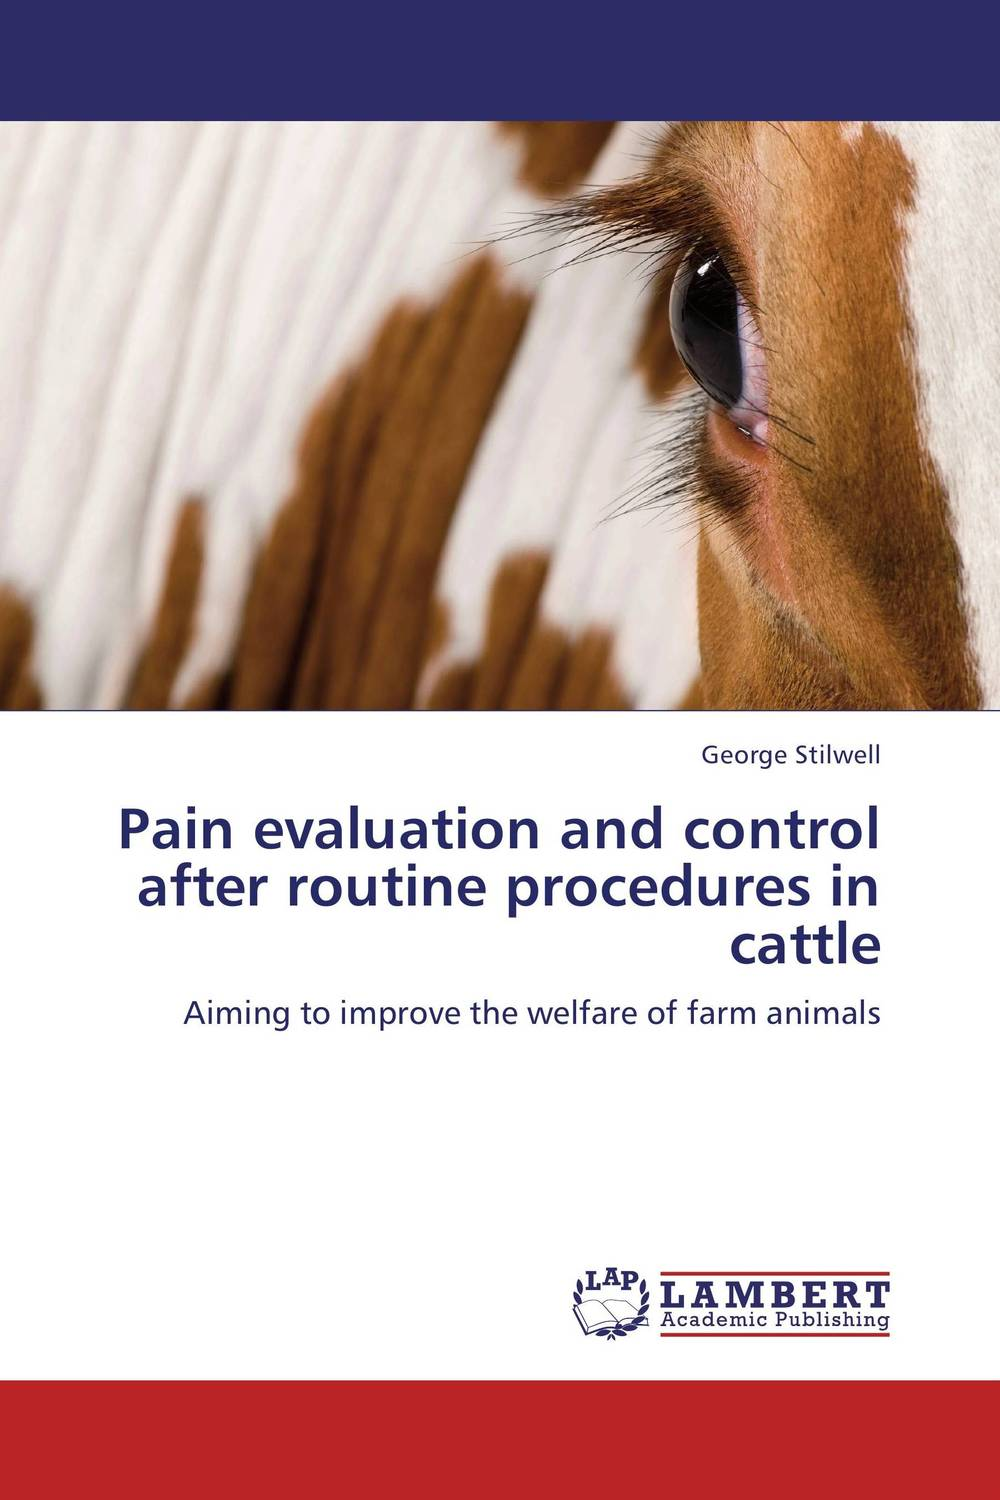 Pain evaluation and control after routine procedures in cattle evaluation of the internal control practices